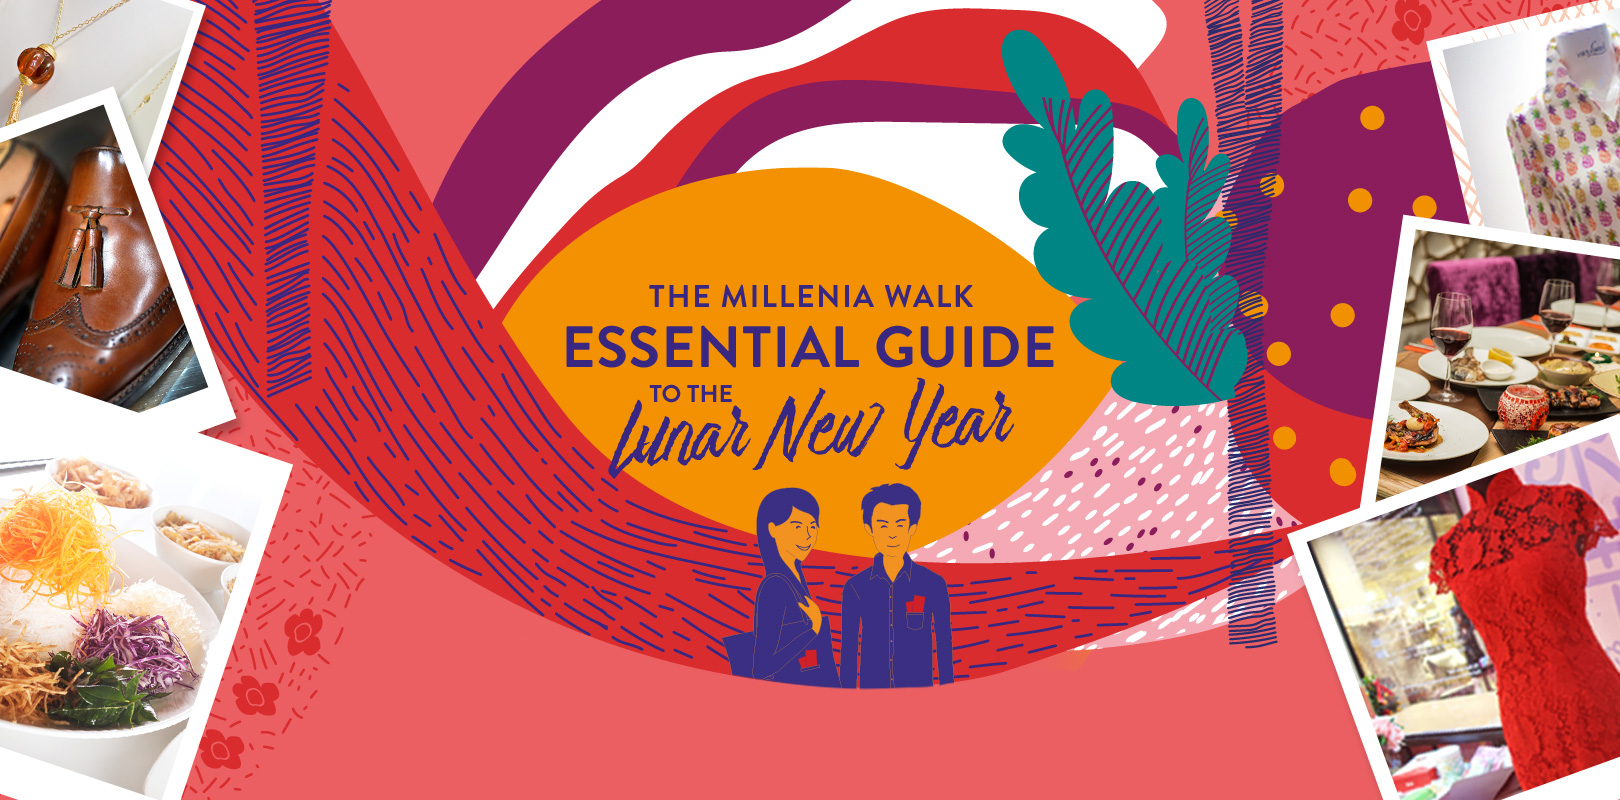 The Millenia Walk Essential Guide to the Lunar New Year